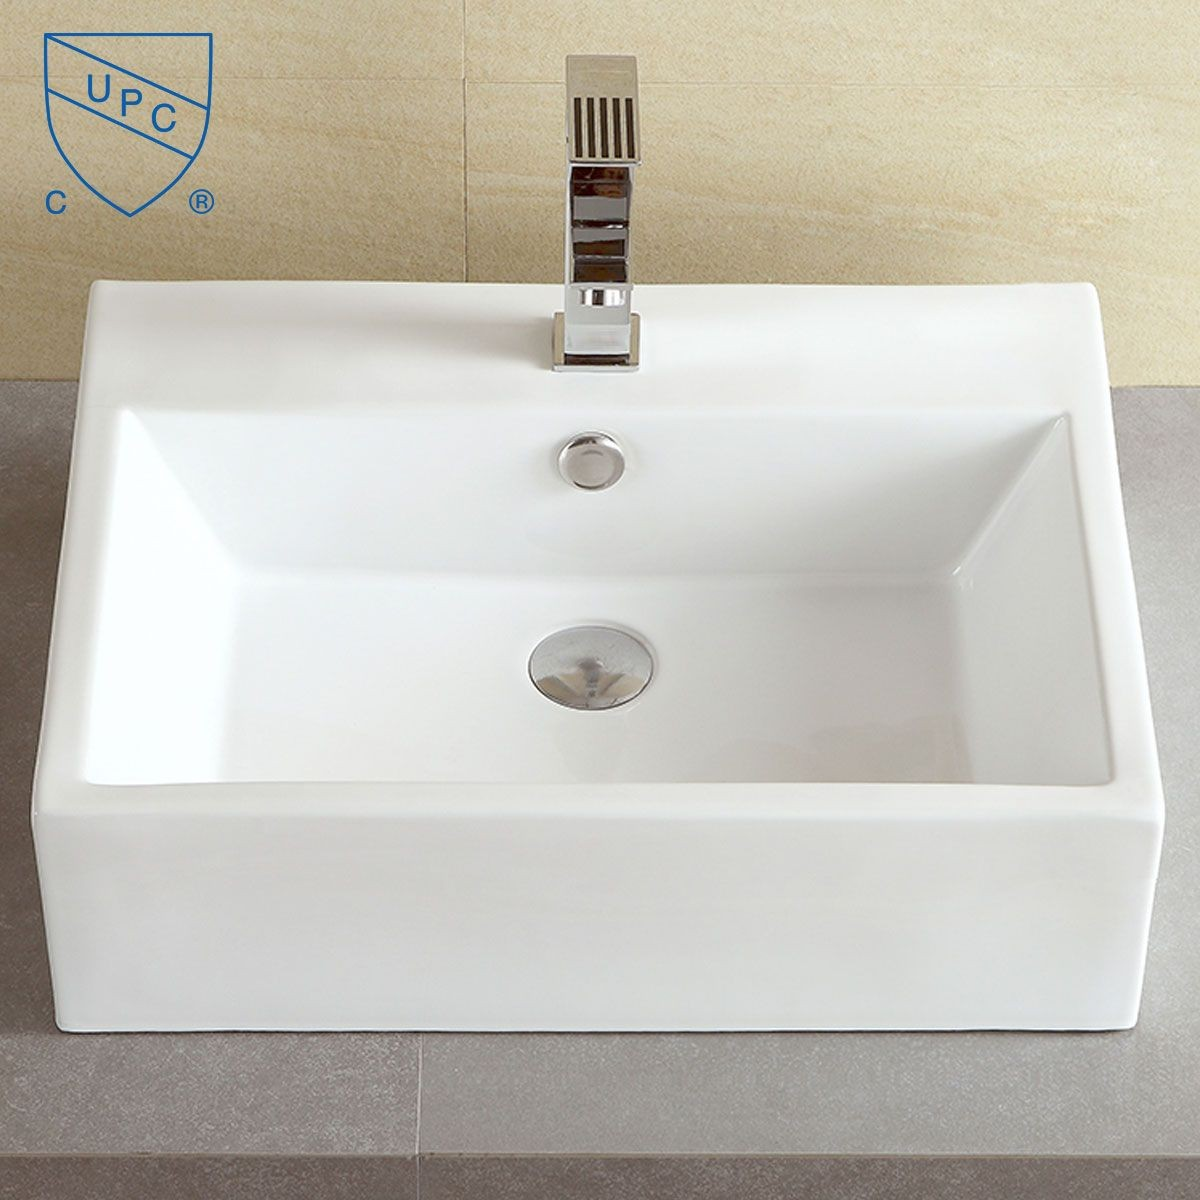 decoraport white rectangle ceramic above counter basin vessel vanity sink cl1094